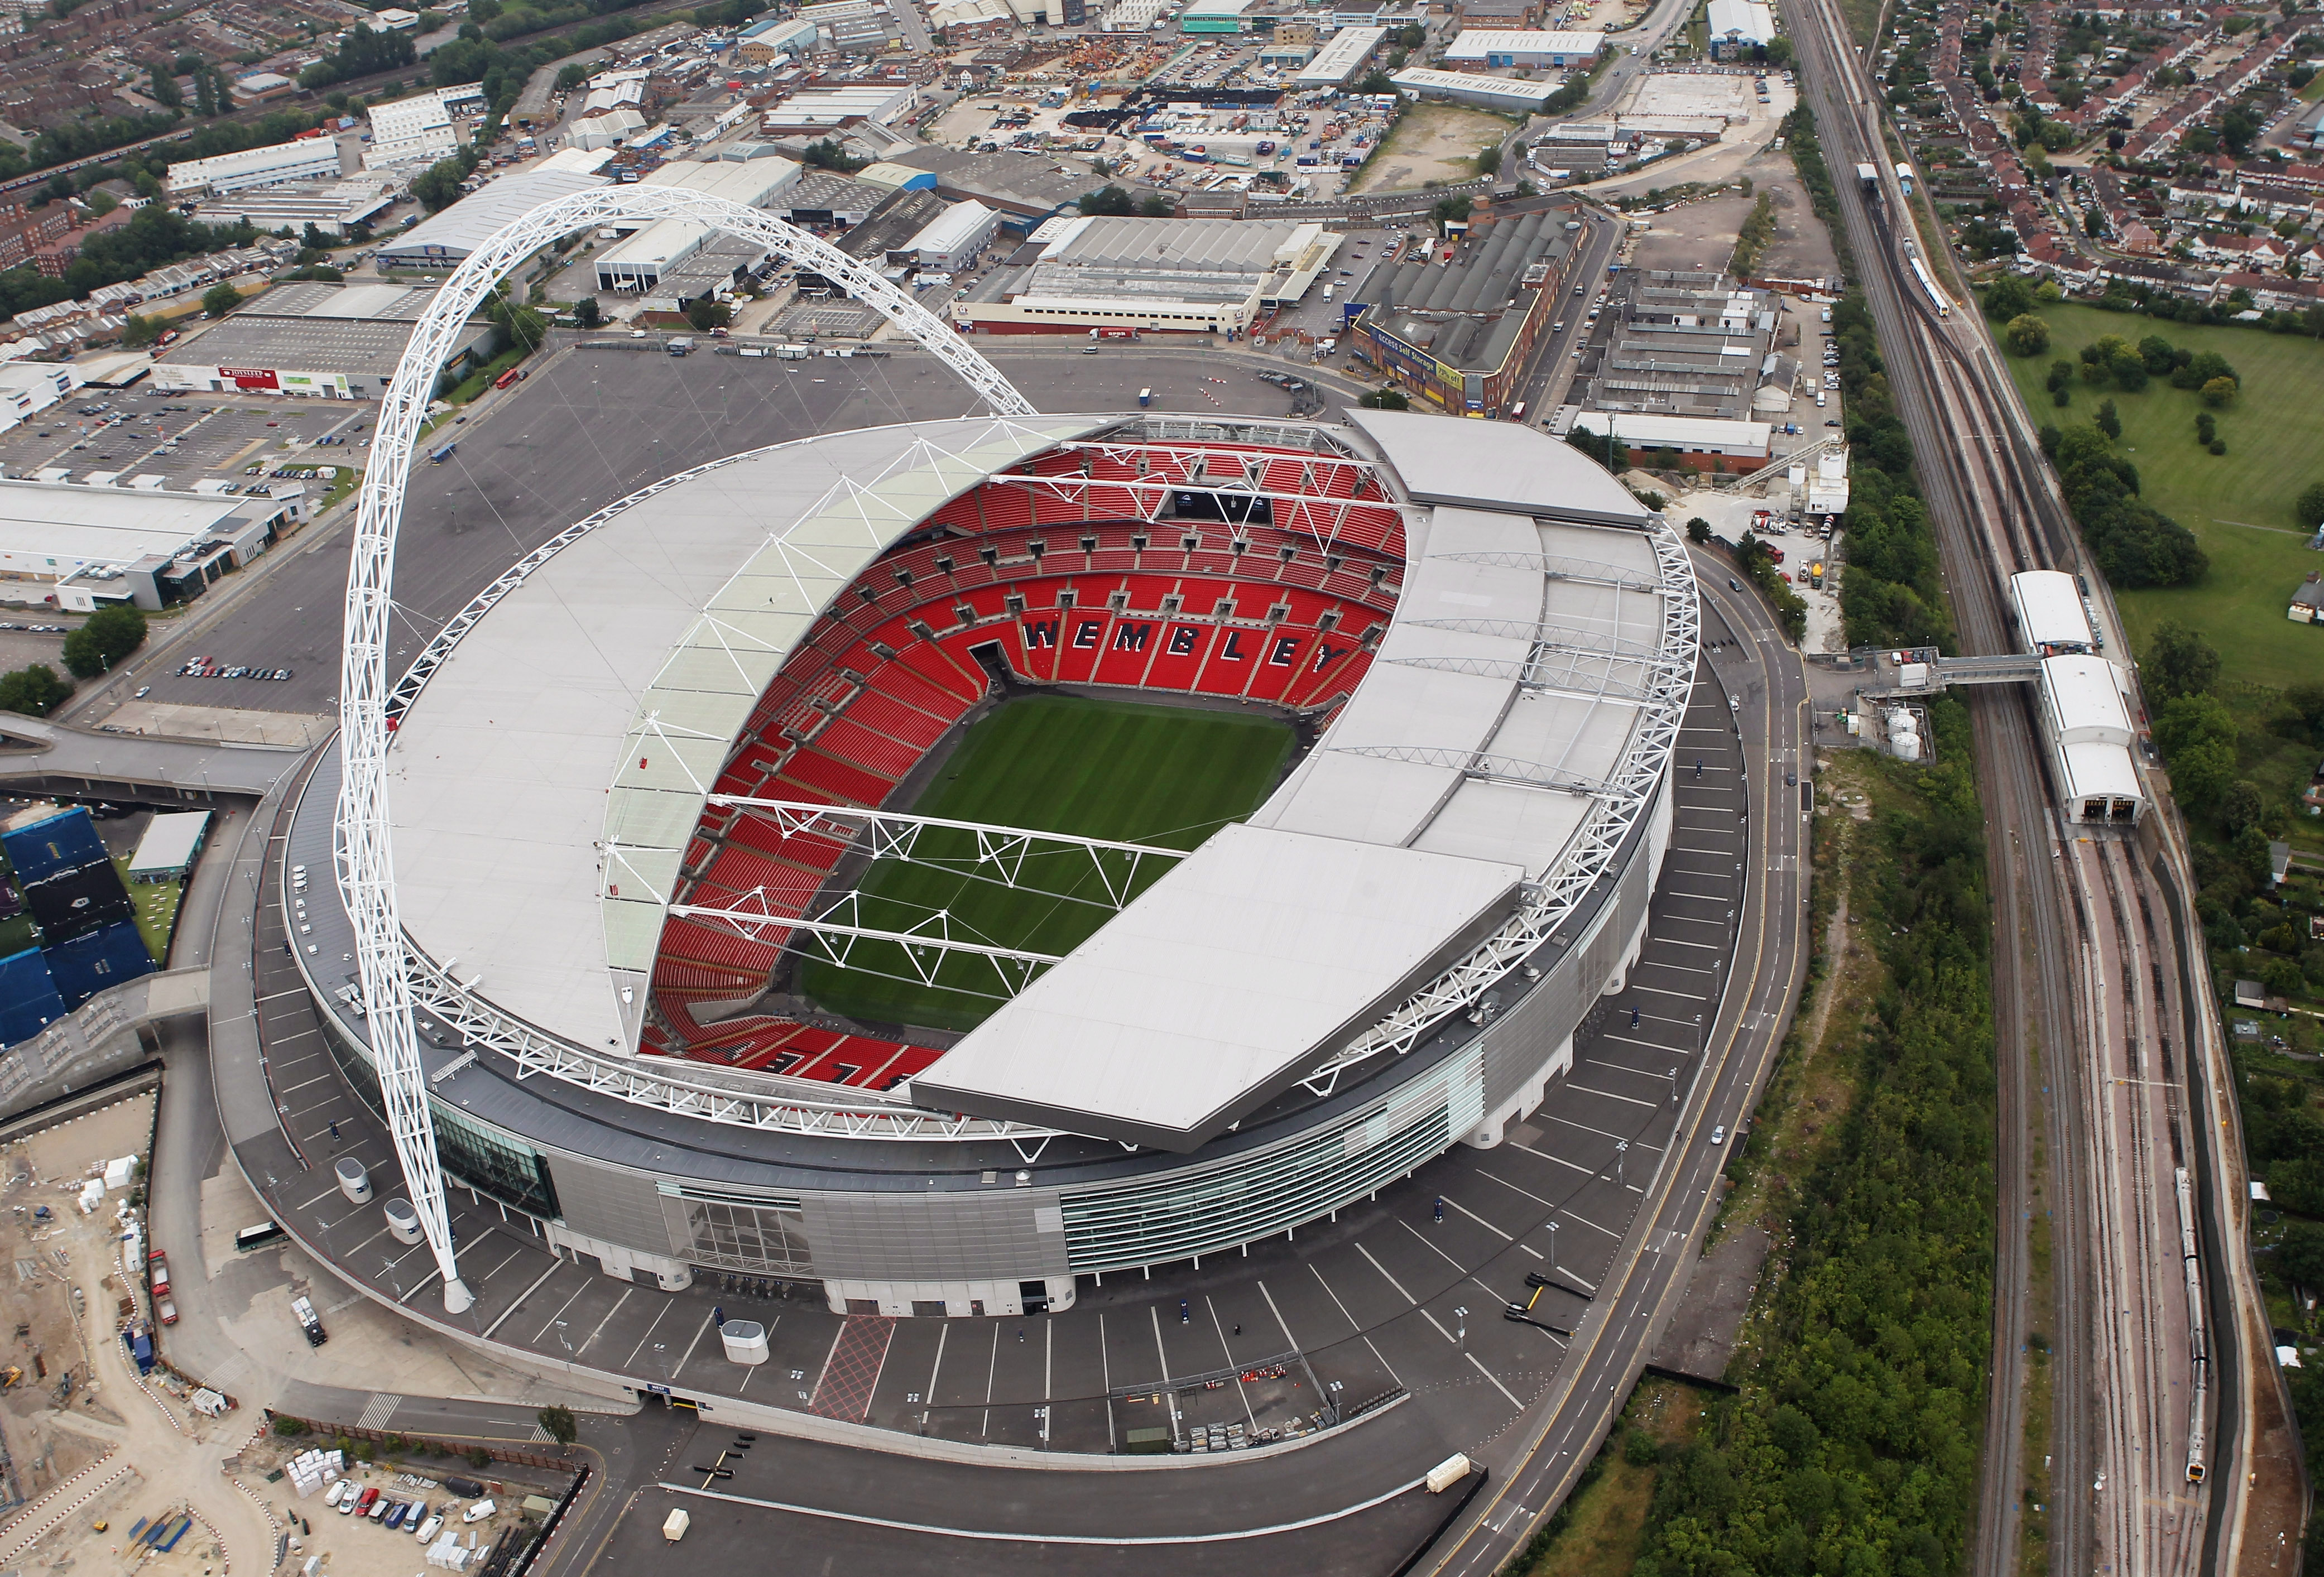 How much did Wembley Stadium cost and who owns it?